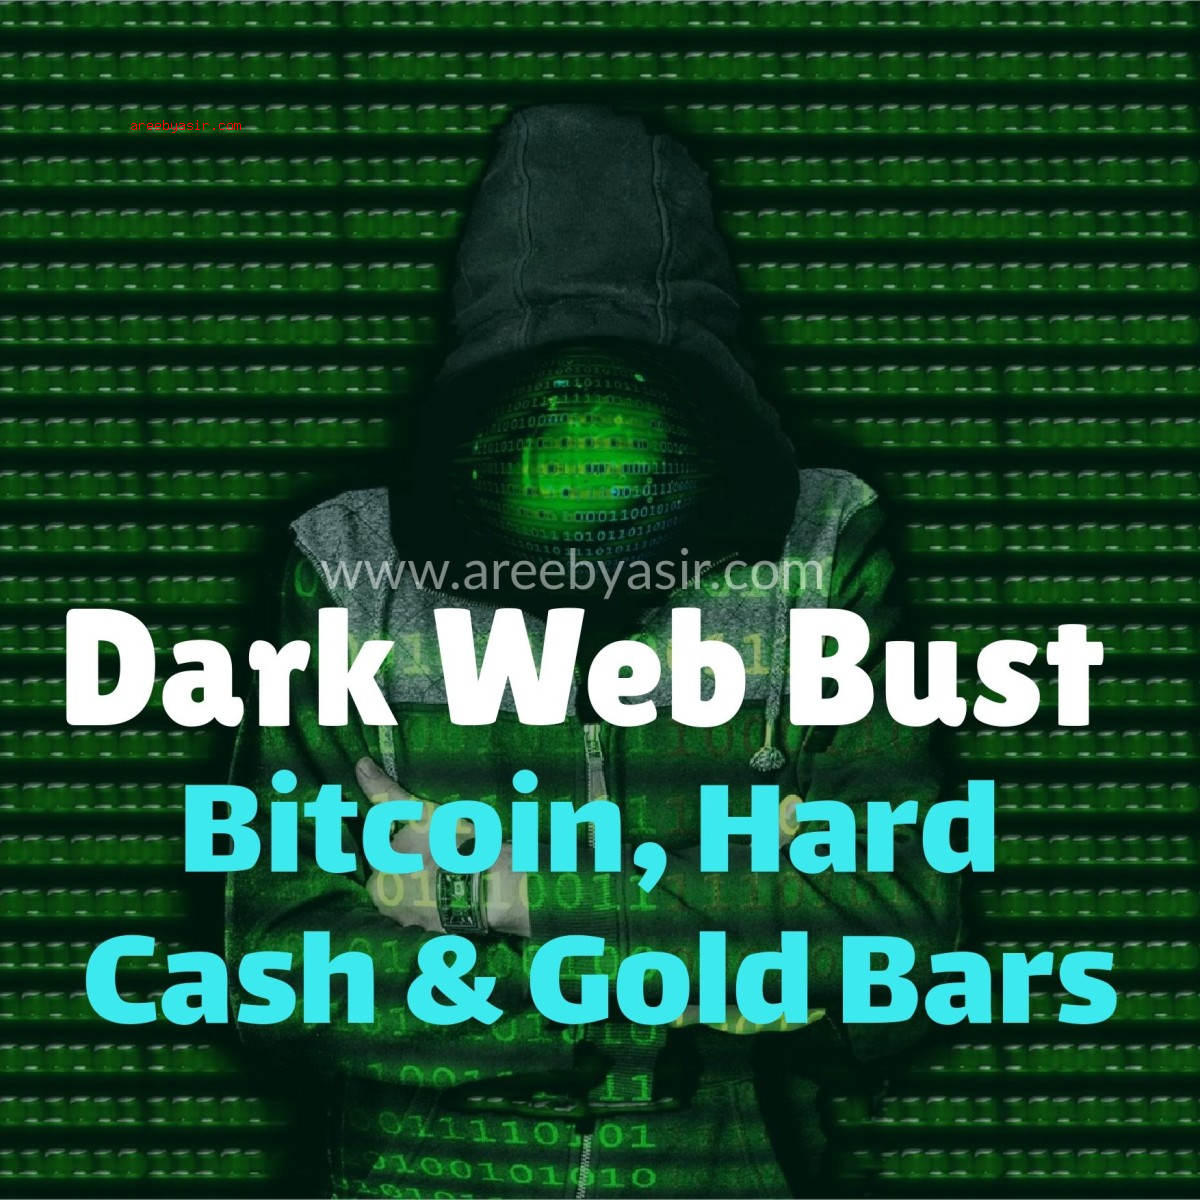 The Dark Web Bust